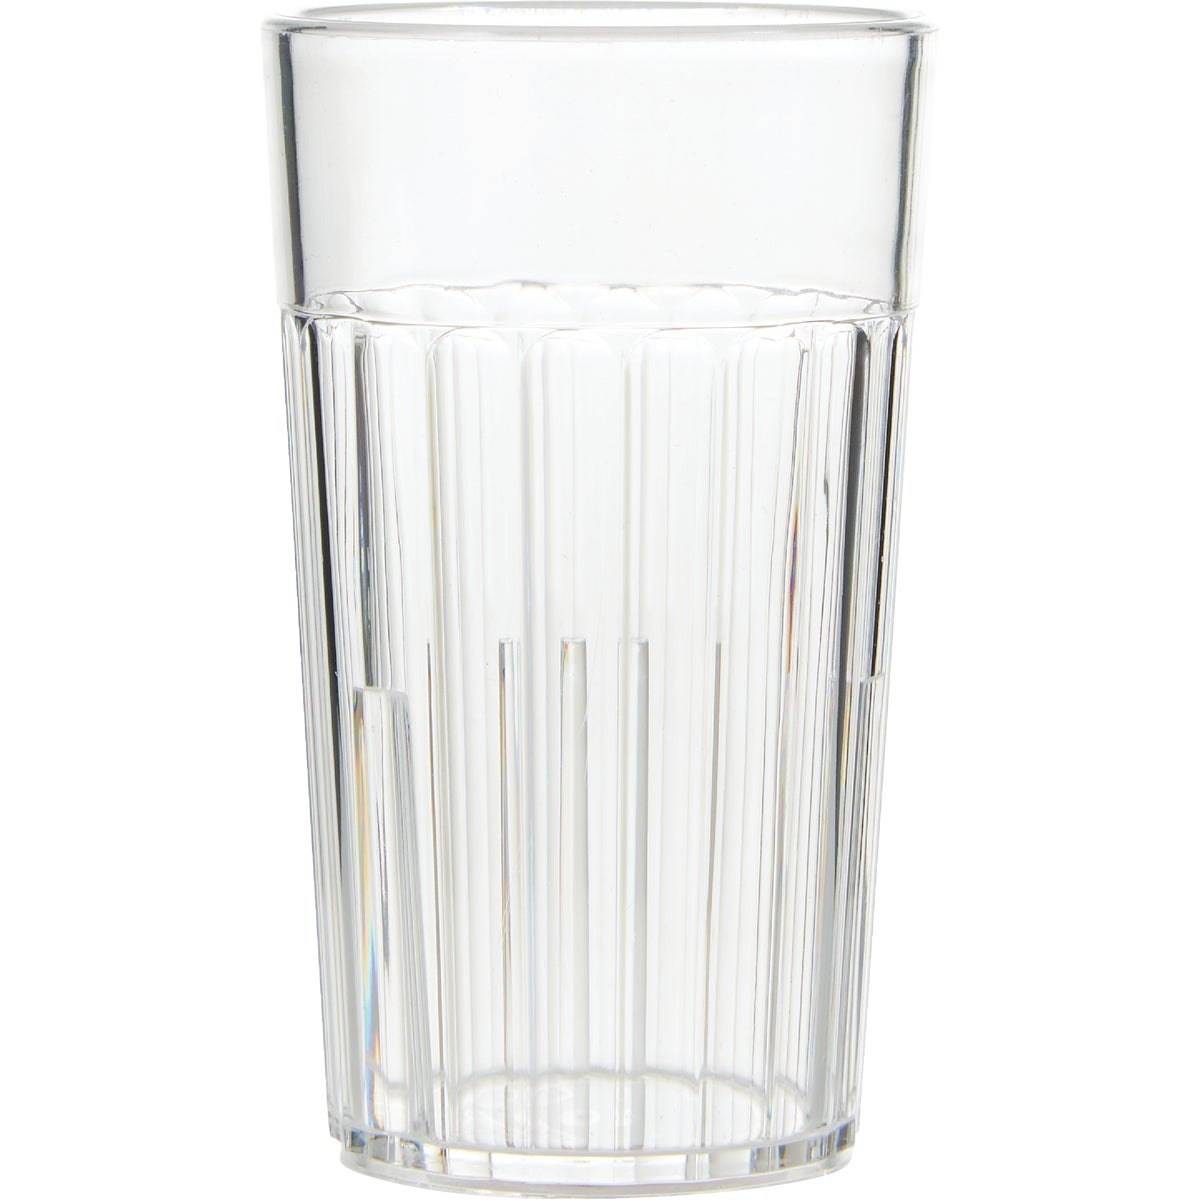 6OZ CLEAR TUMBLER - 00115 by Arrow Plastic Mfg Co